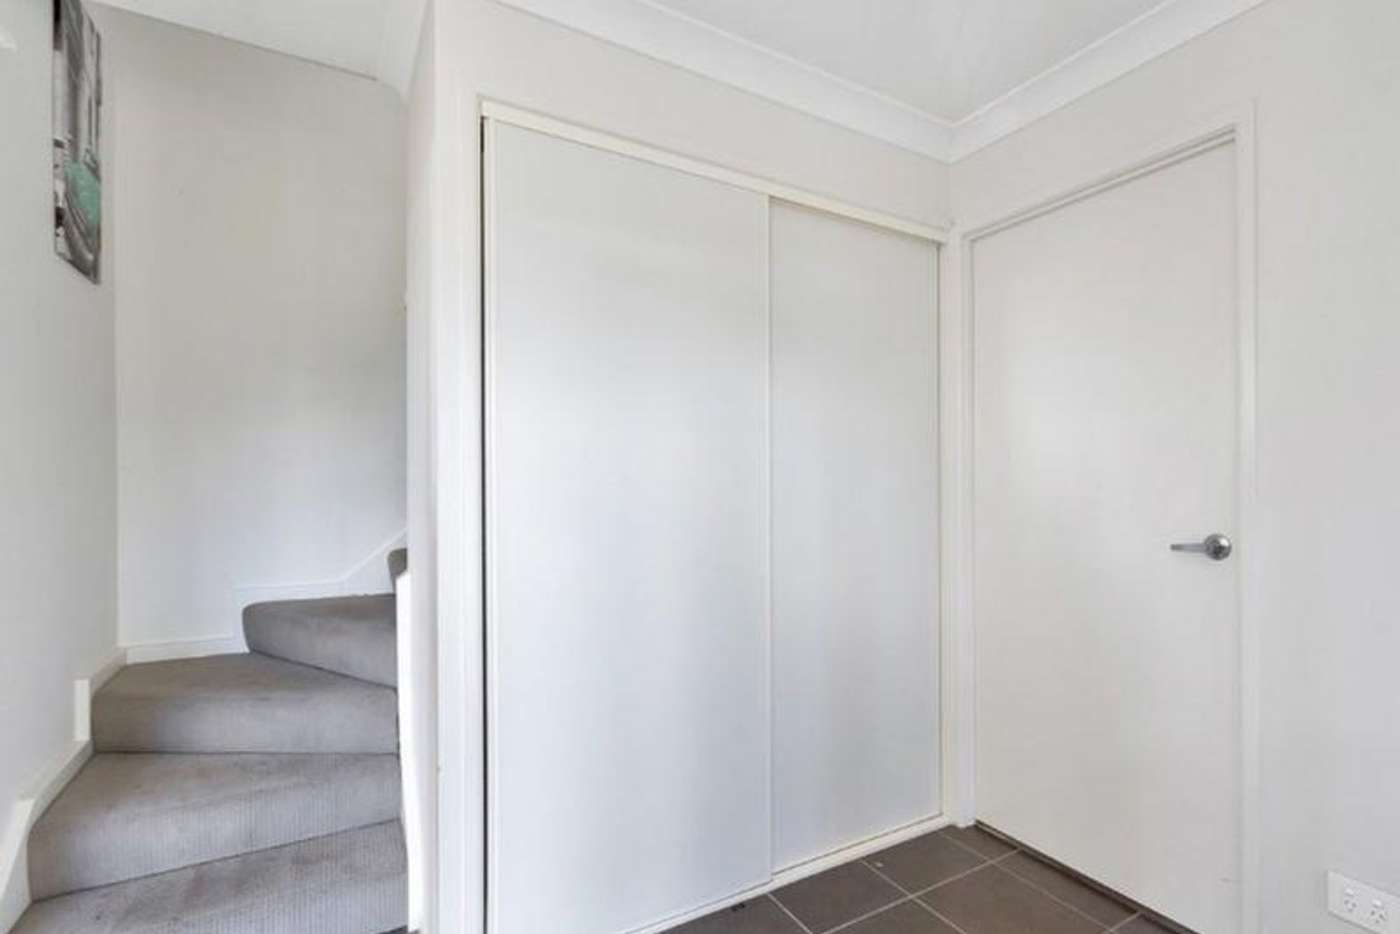 Sixth view of Homely house listing, 90 High Street, Blackstone QLD 4304